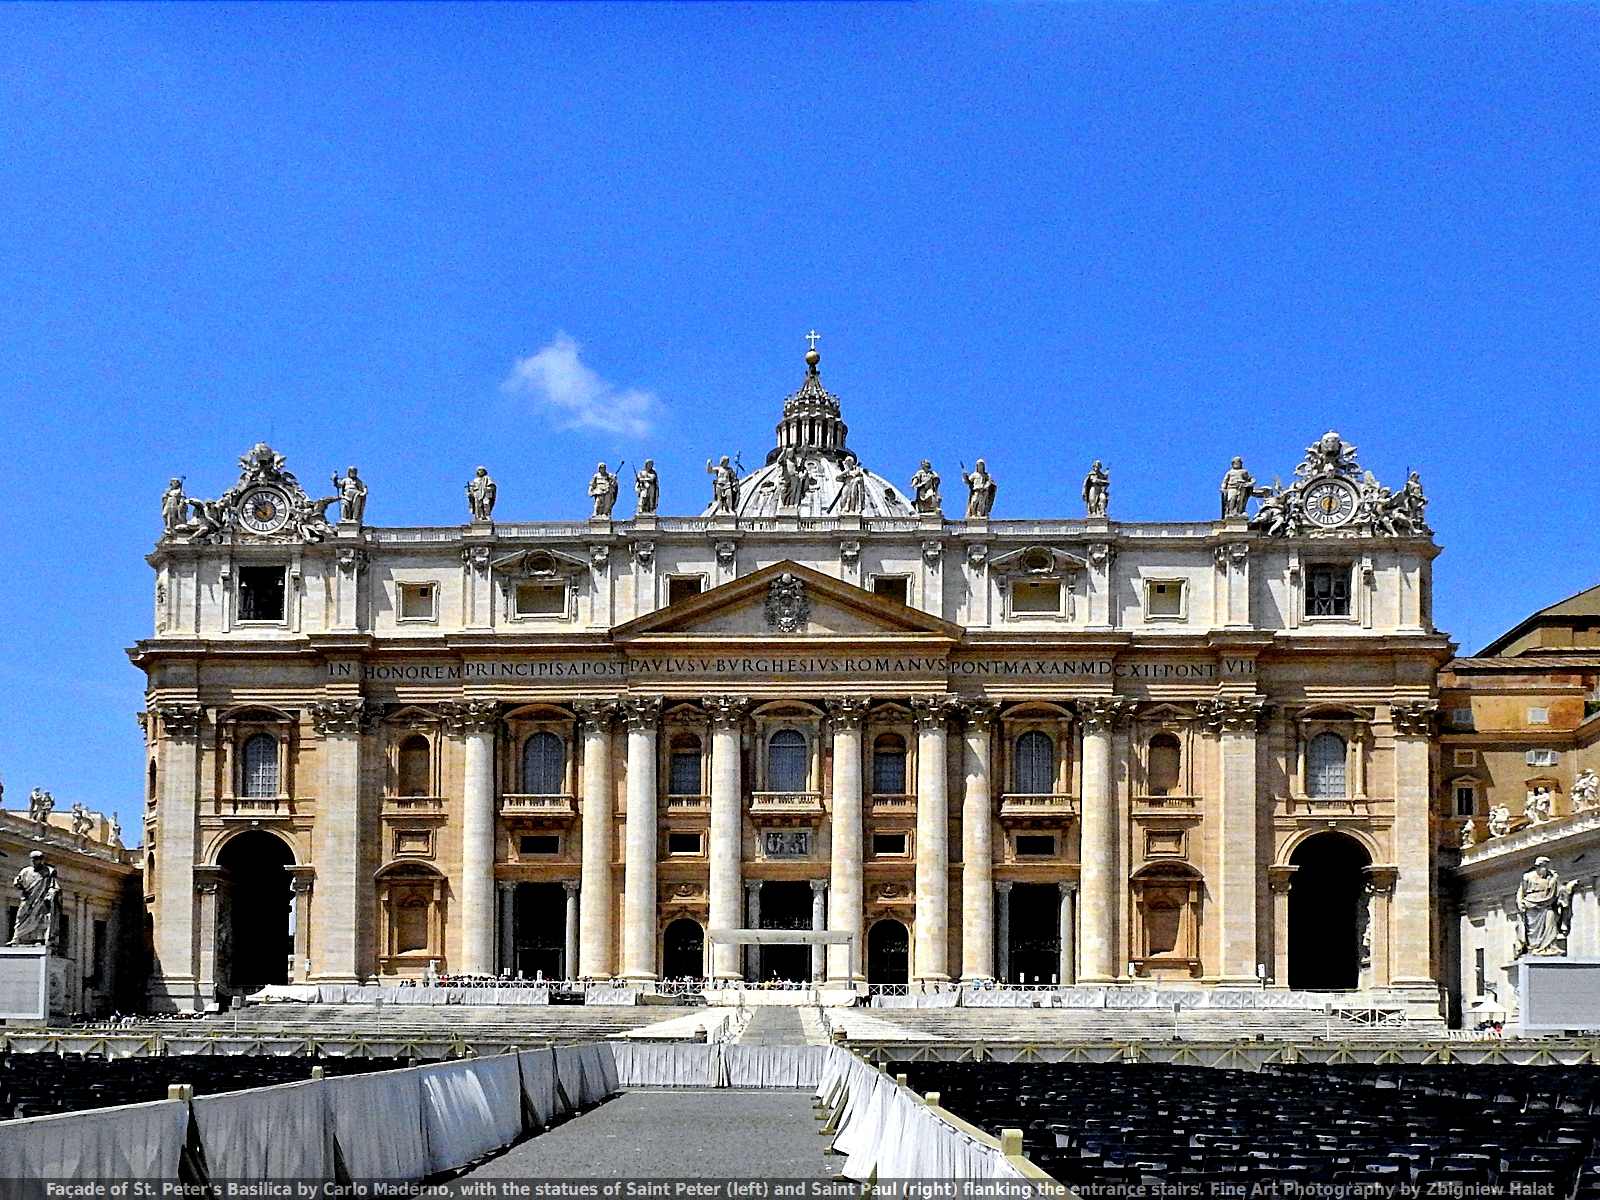 Façade of St. Peter's Basilica by Carlo Maderno, with the statues of Saint Peter (left) and Saint Paul (right) flanking the entrance stairs. Fine Art Photography by Zbigniew Halat